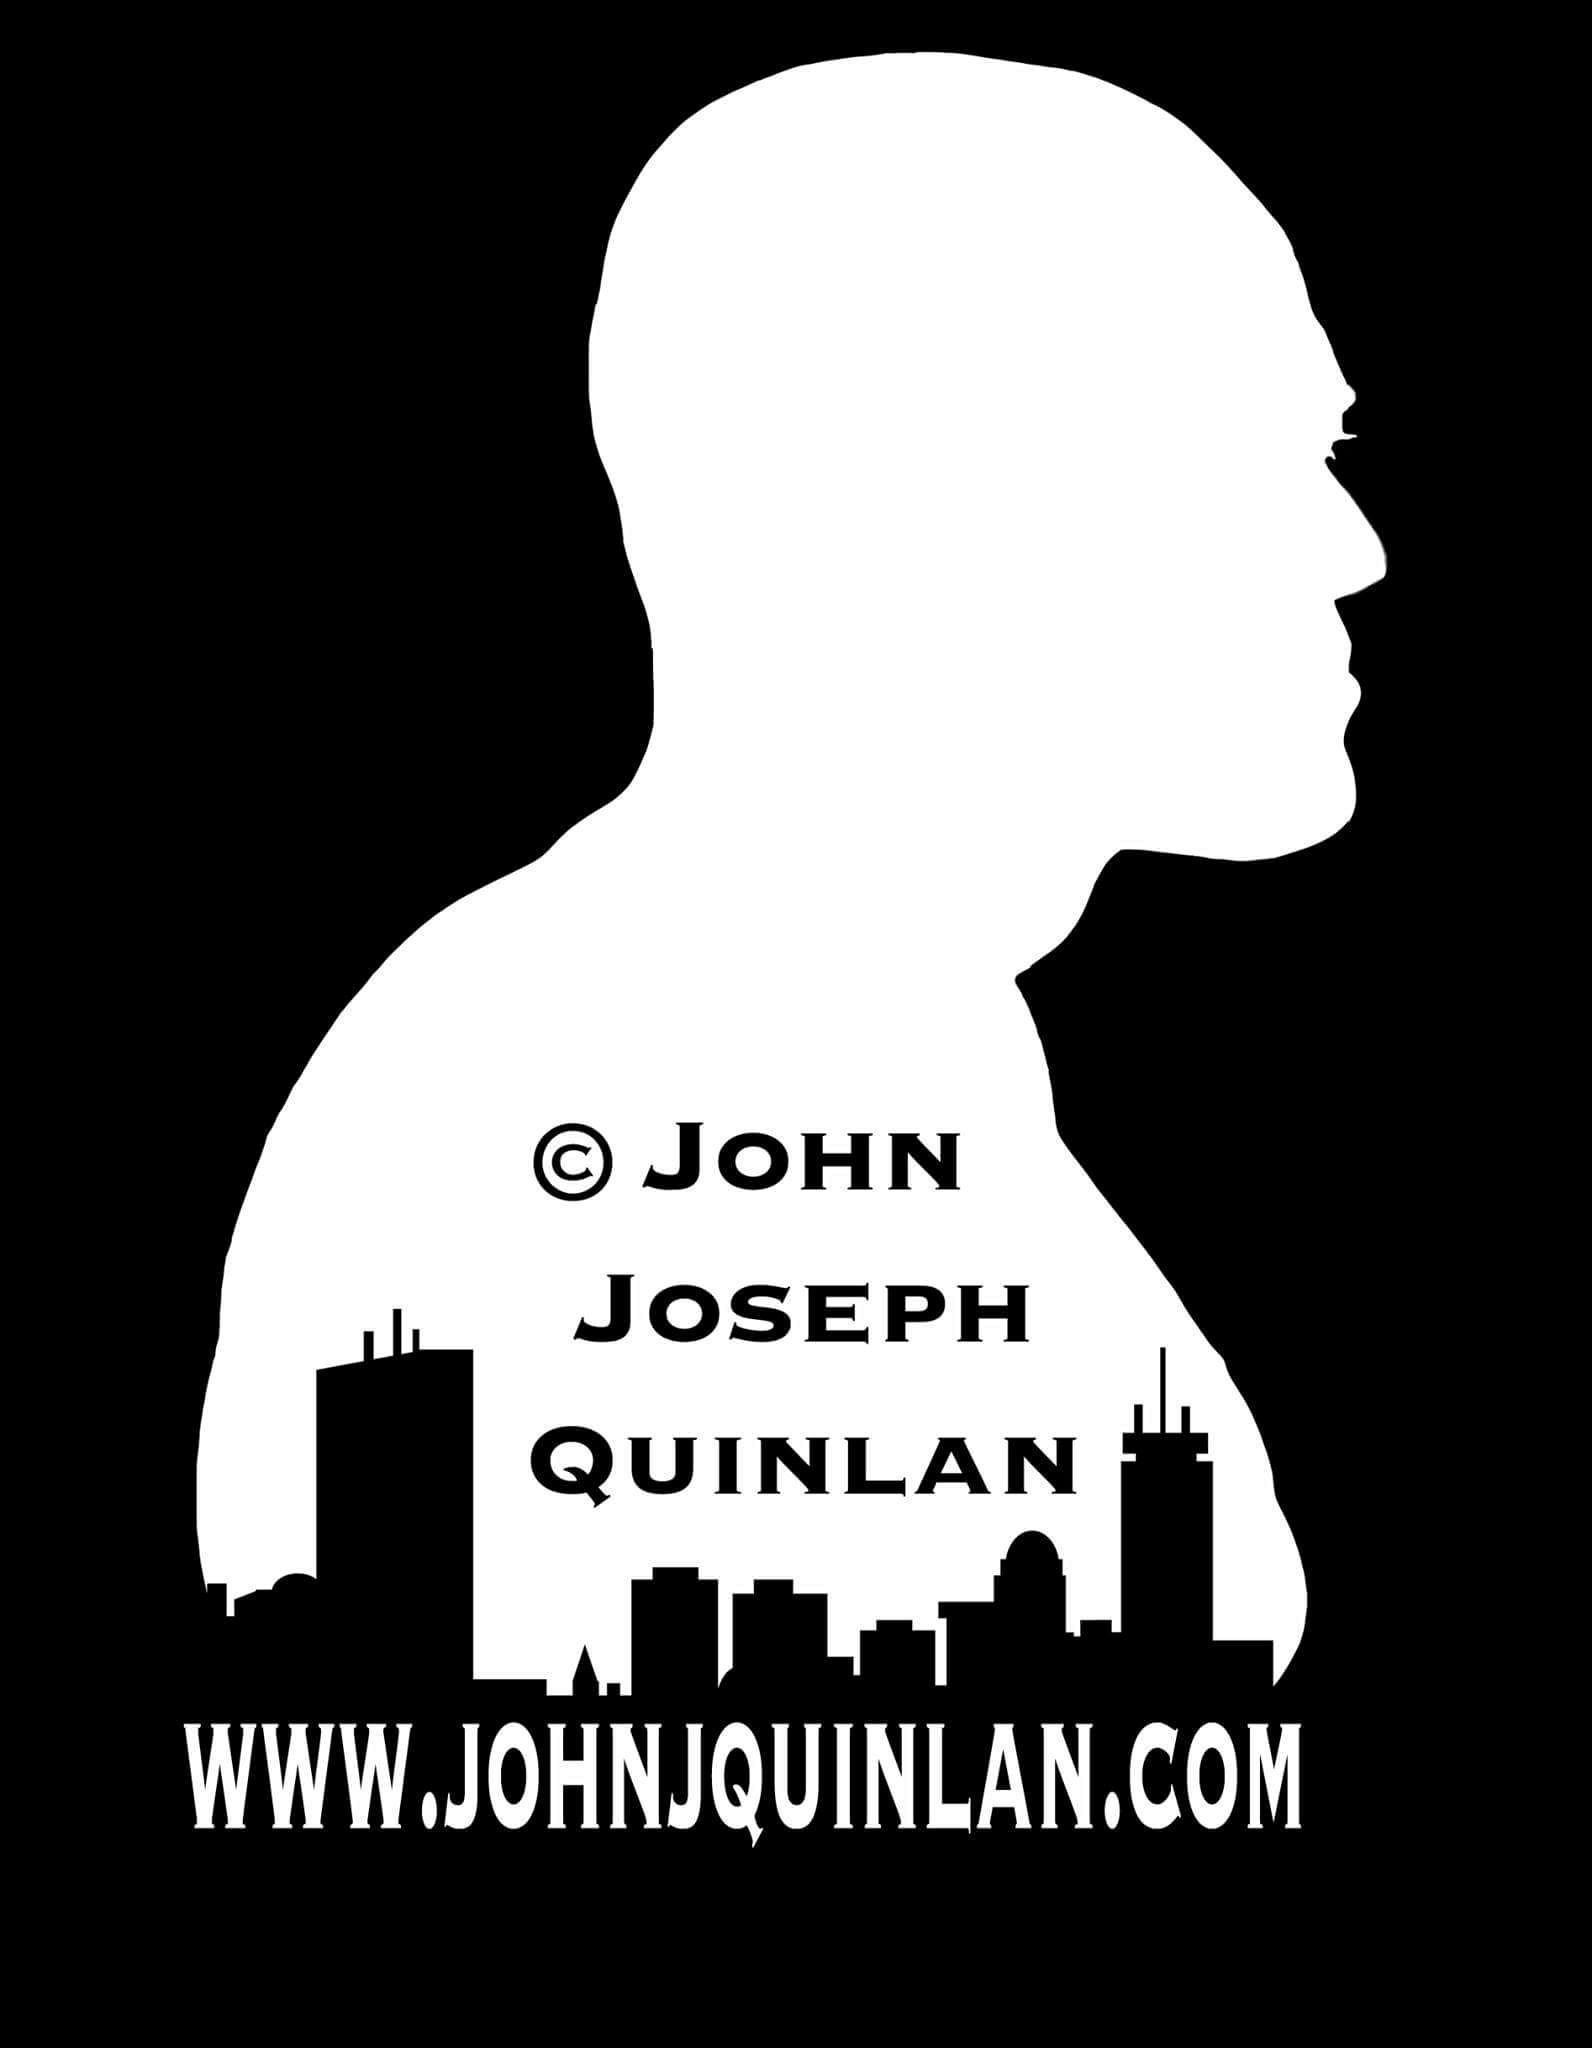 Model & Actor John Joseph Quinlan Official Logo by Claudia Bost #JohnQuinlan